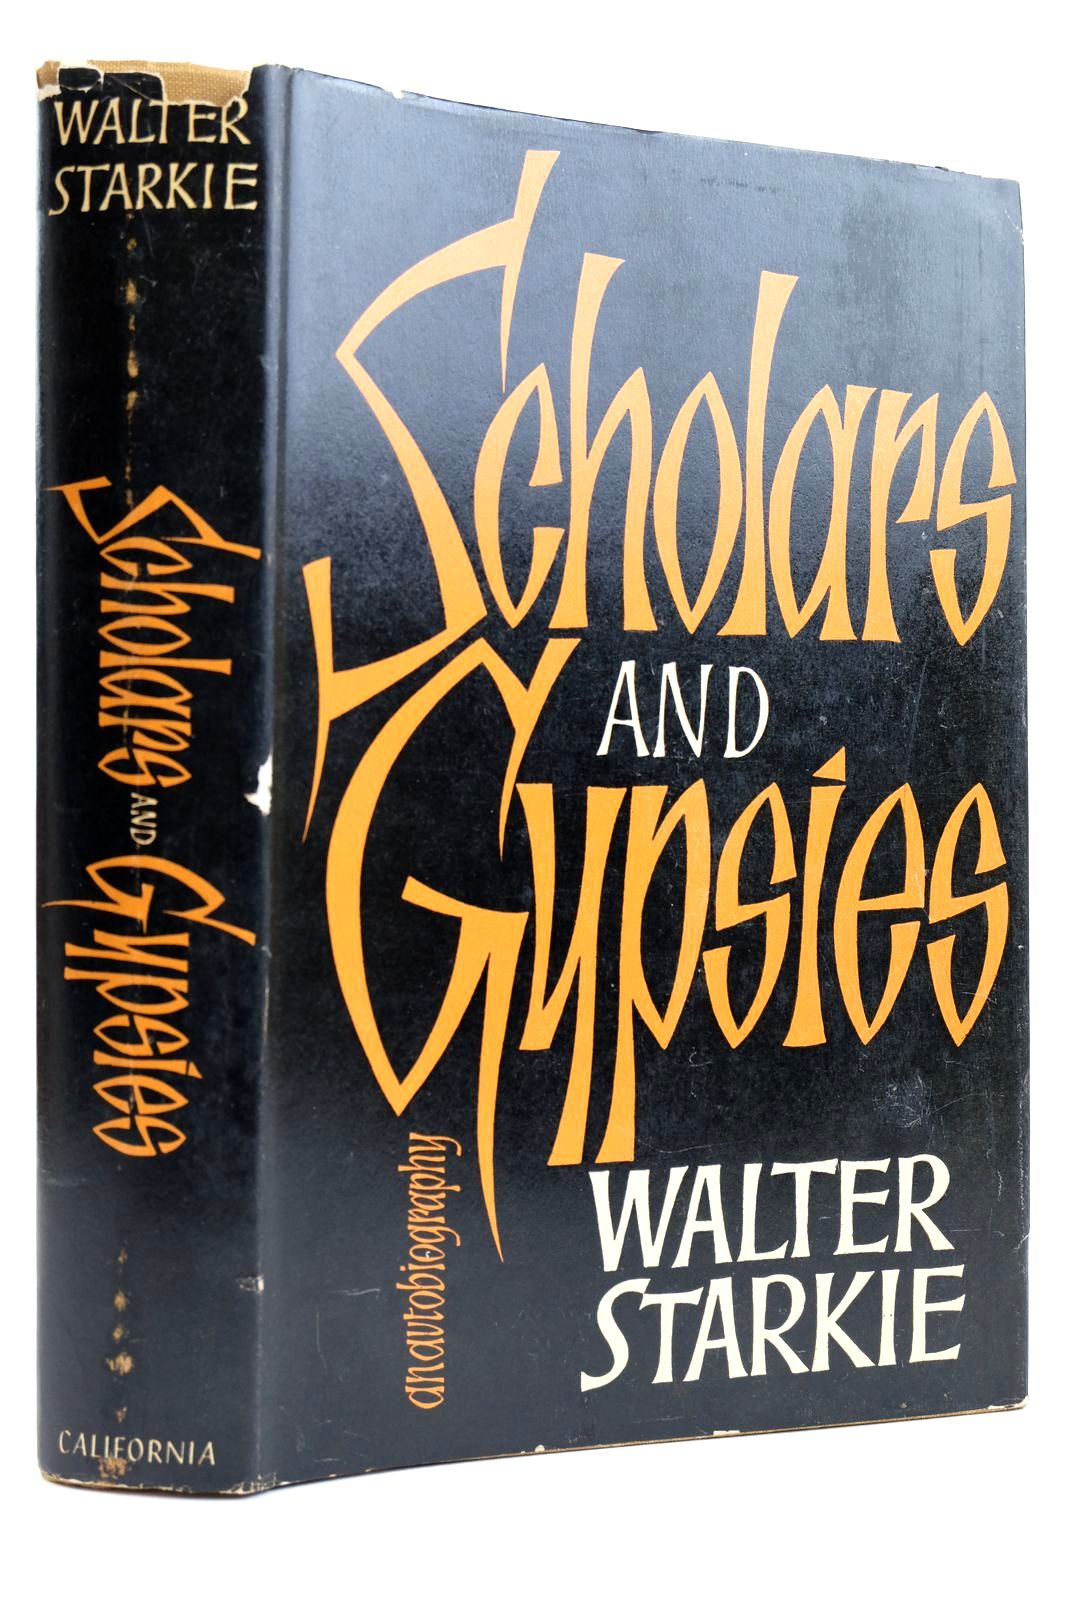 Photo of SCHOLARS AND GYPSIES AN AUTOBIOGRAPHY written by Starkie, Walter published by University of California Press (STOCK CODE: 2132472)  for sale by Stella & Rose's Books